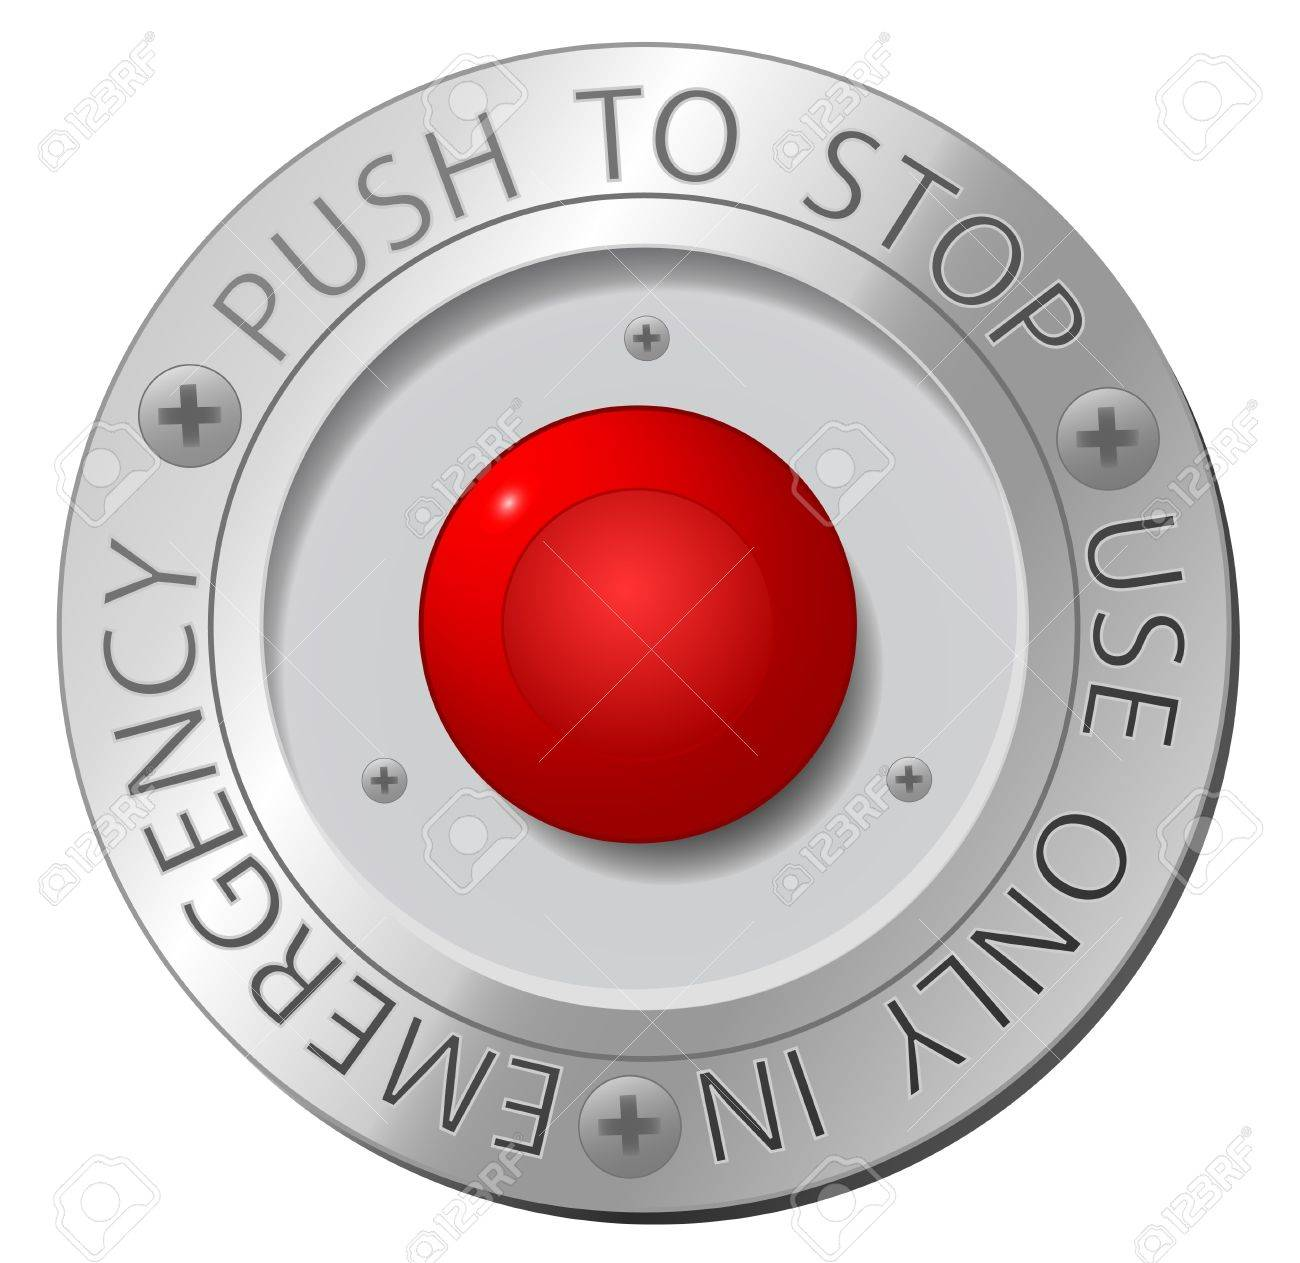 Emergency stop icon clipart emergency off - Emergency Button Red Stop Button